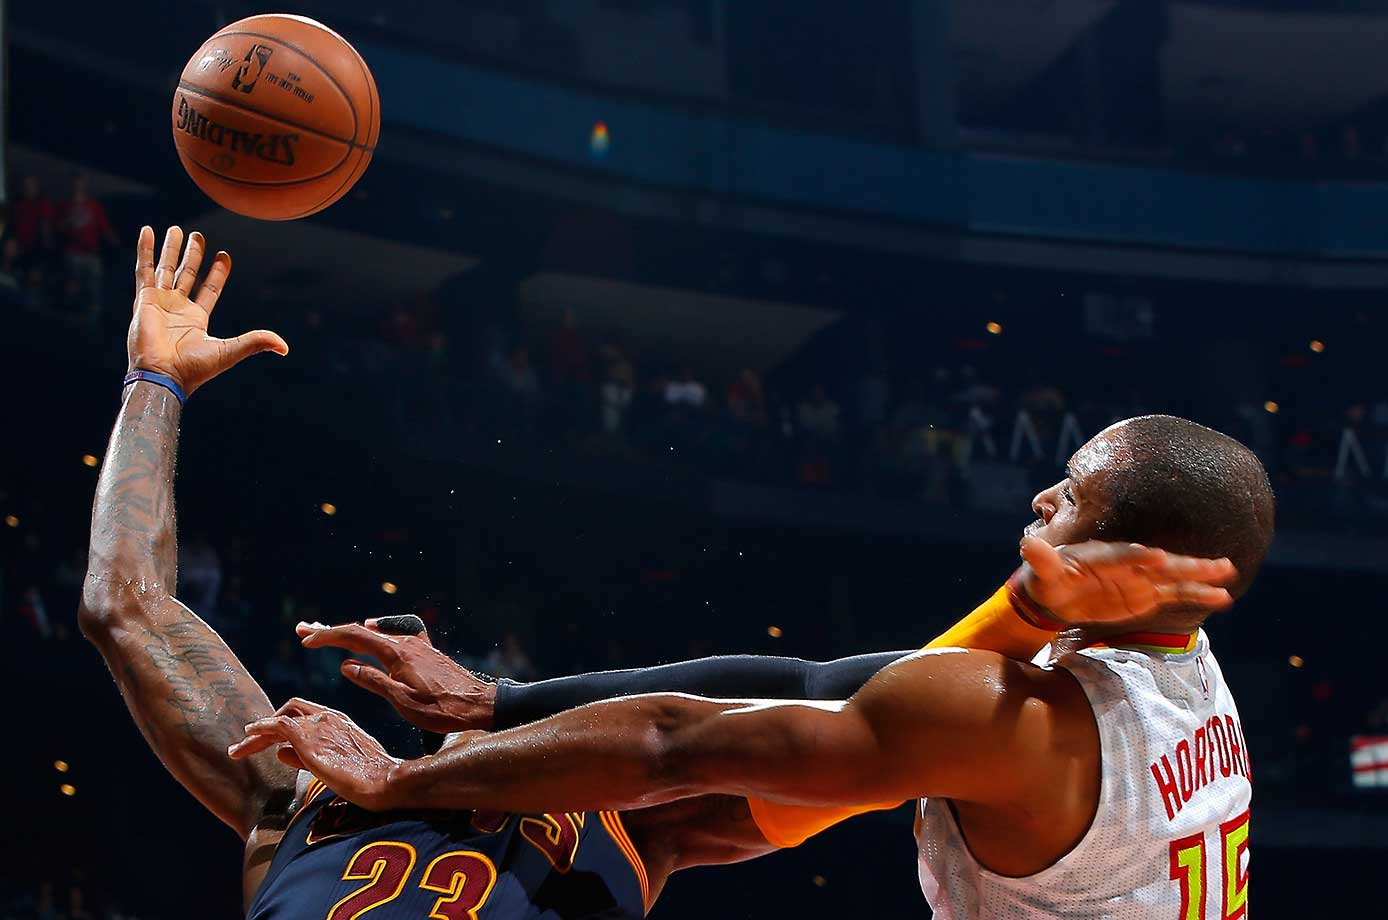 Al Horford of the Atlanta Hawks seemingly makes LeBron James lose his head on a hard foul.